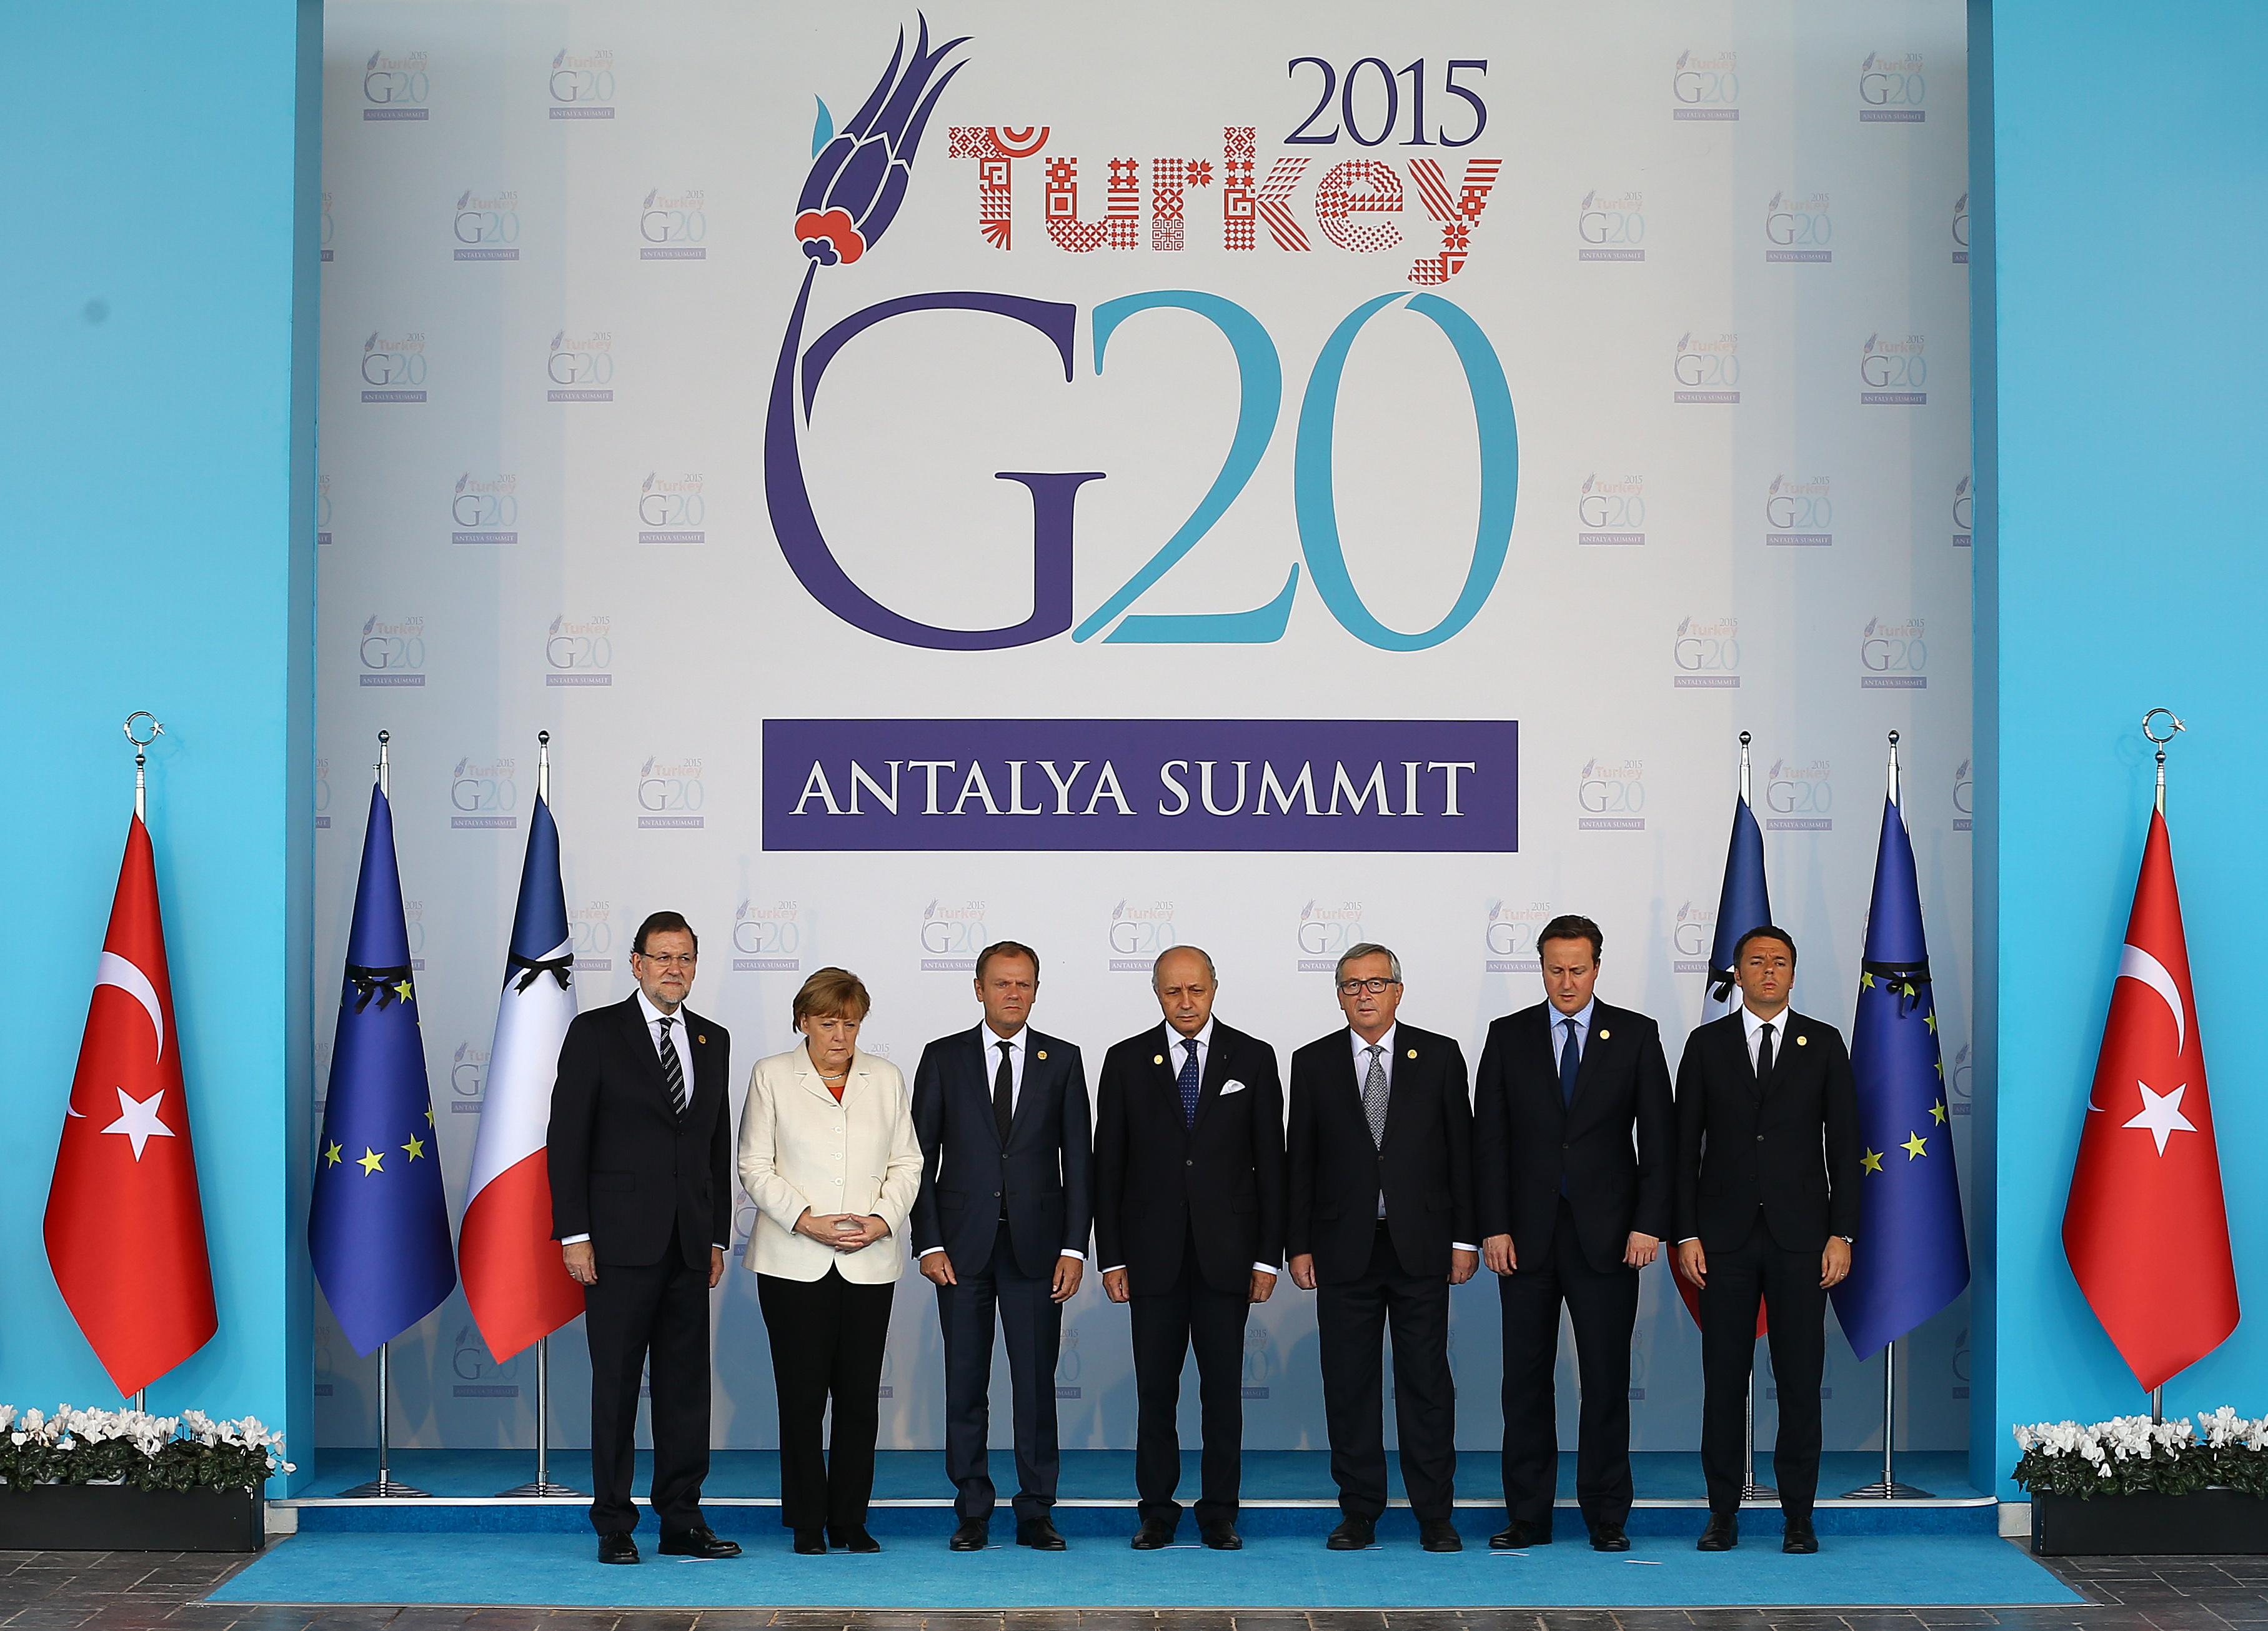 European Union leaders observe a minute of silence to honour the victims of the attacks in Paris, at the G-20 Summit in Antalya, Turkey, Monday, Nov. 16, 2015. From left to right, Spain's Prime Minister Mariano Rajoy, German Chancellor Angela Merkel, European Council President Donald Tusk, France's Foreign Minister Laurent Fabius, European Commission President Jean-Claude Juncker, British Prime Minister David Cameron, and Italian Prime Minister Matteo Renzi. The leaders of the Group of 20 were wrapping up their two-day summit in Turkey Monday against the backdrop of heavy French bombardment of the Islamic State's stronghold in Syria. (Anadolu Agency via AP, Pool)